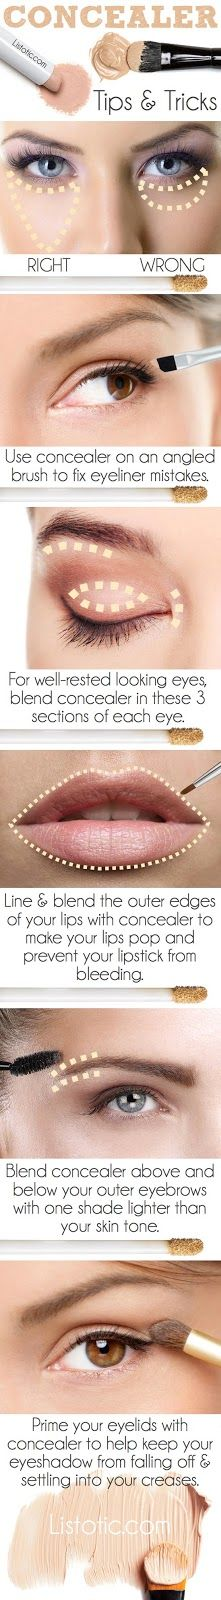 21 Beauty Mistakes You Didn't Know You Were Making !